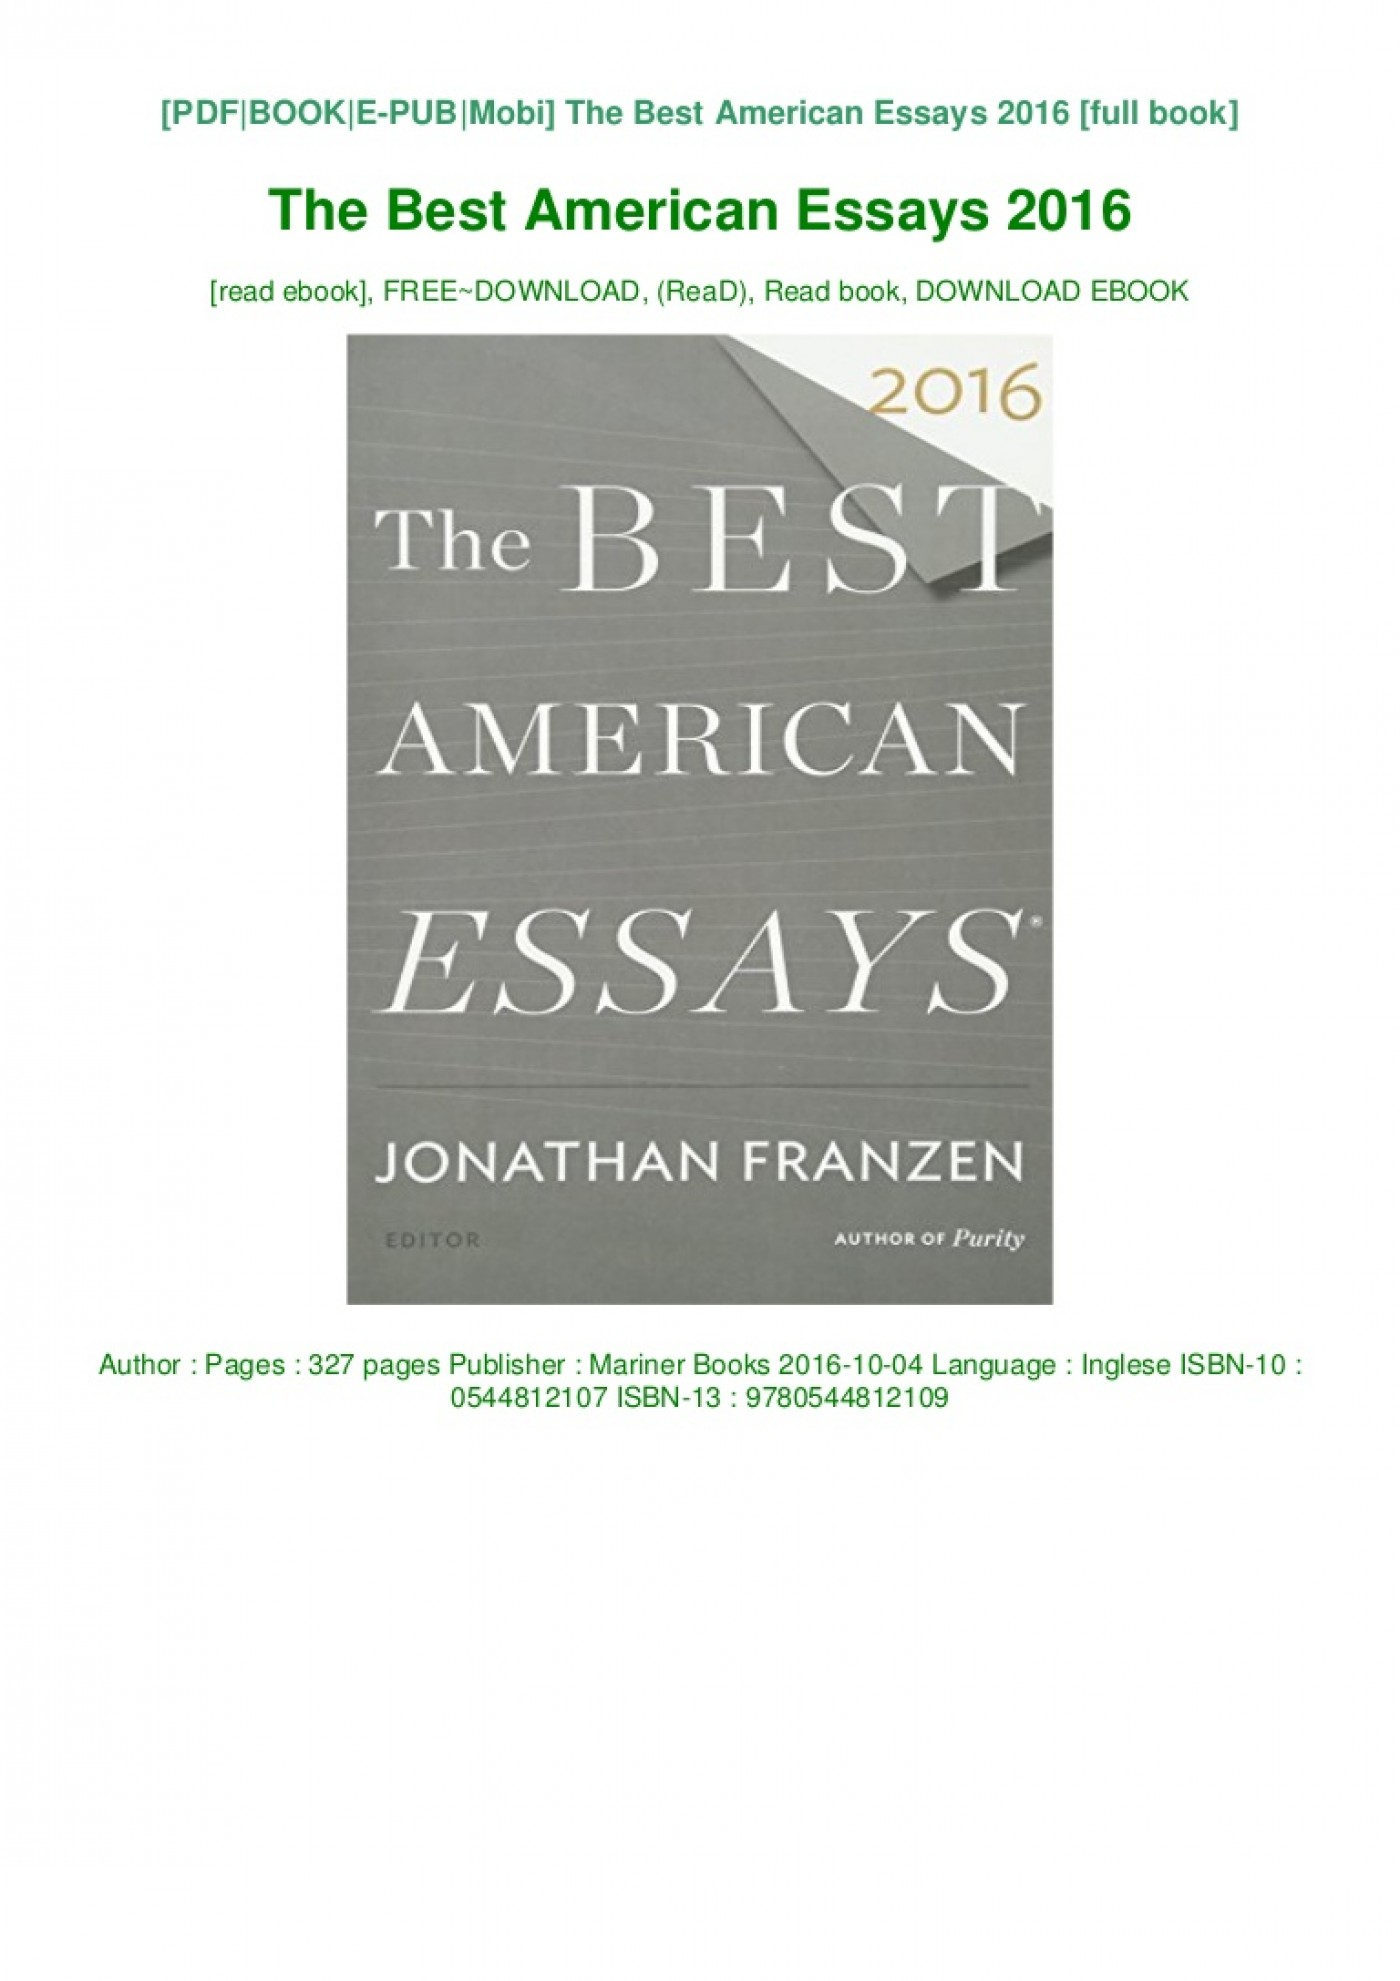 004 The Best American Essays Download Pdf Epub Audiobook Ebook Thumbnail Essay Phenomenal 2016 Sparknotes 1400